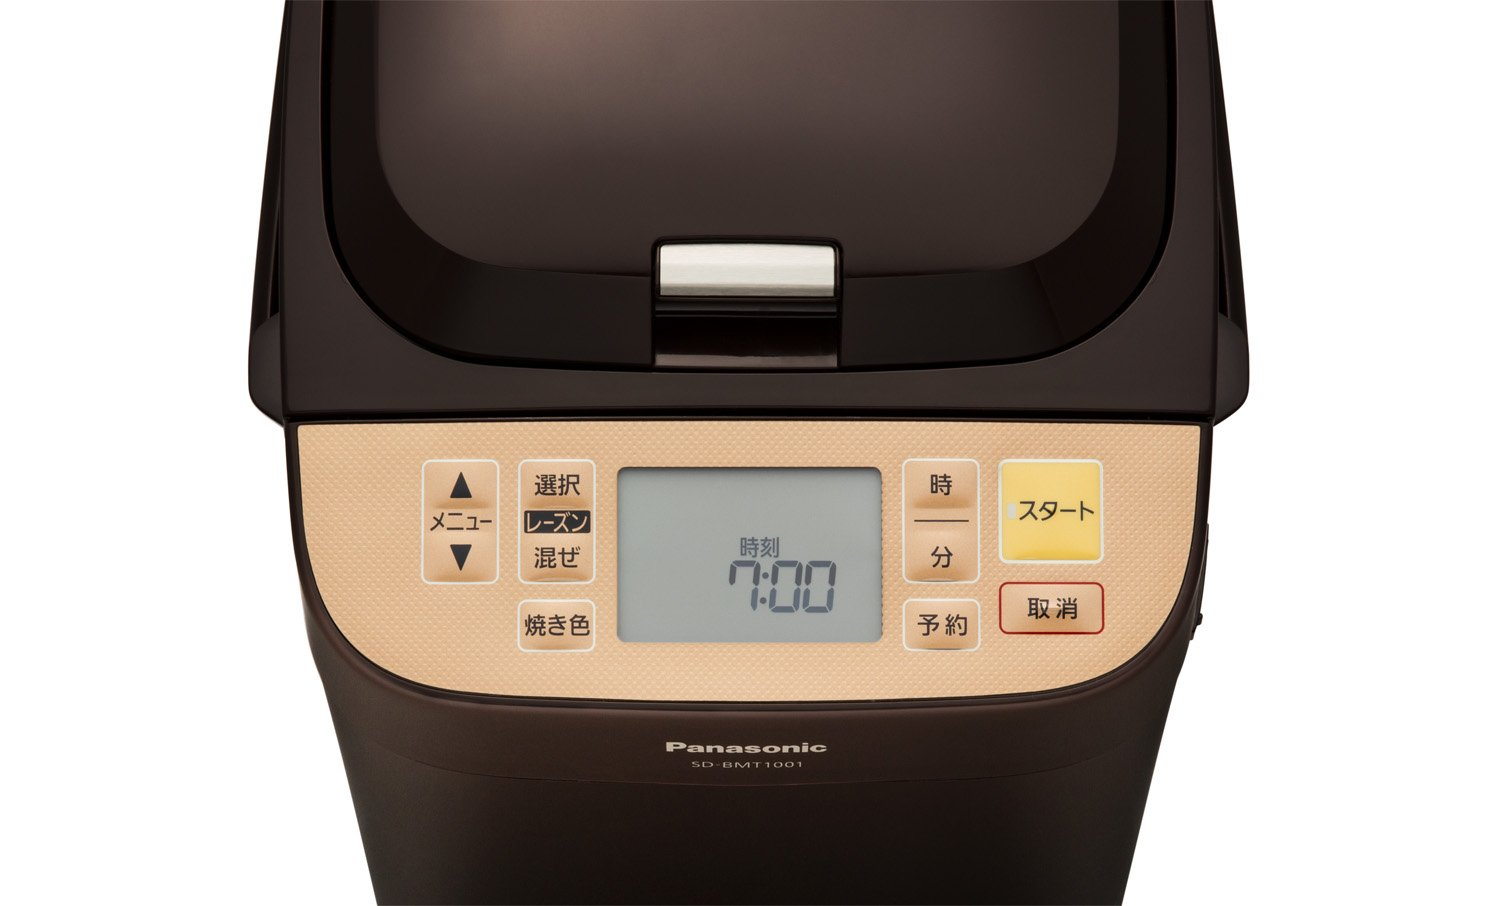 Panasonic home bakery 1 loaf type Brown SD-BMT1001-T--(Japan Import-No Warranty) by Panasonic (Image #4)